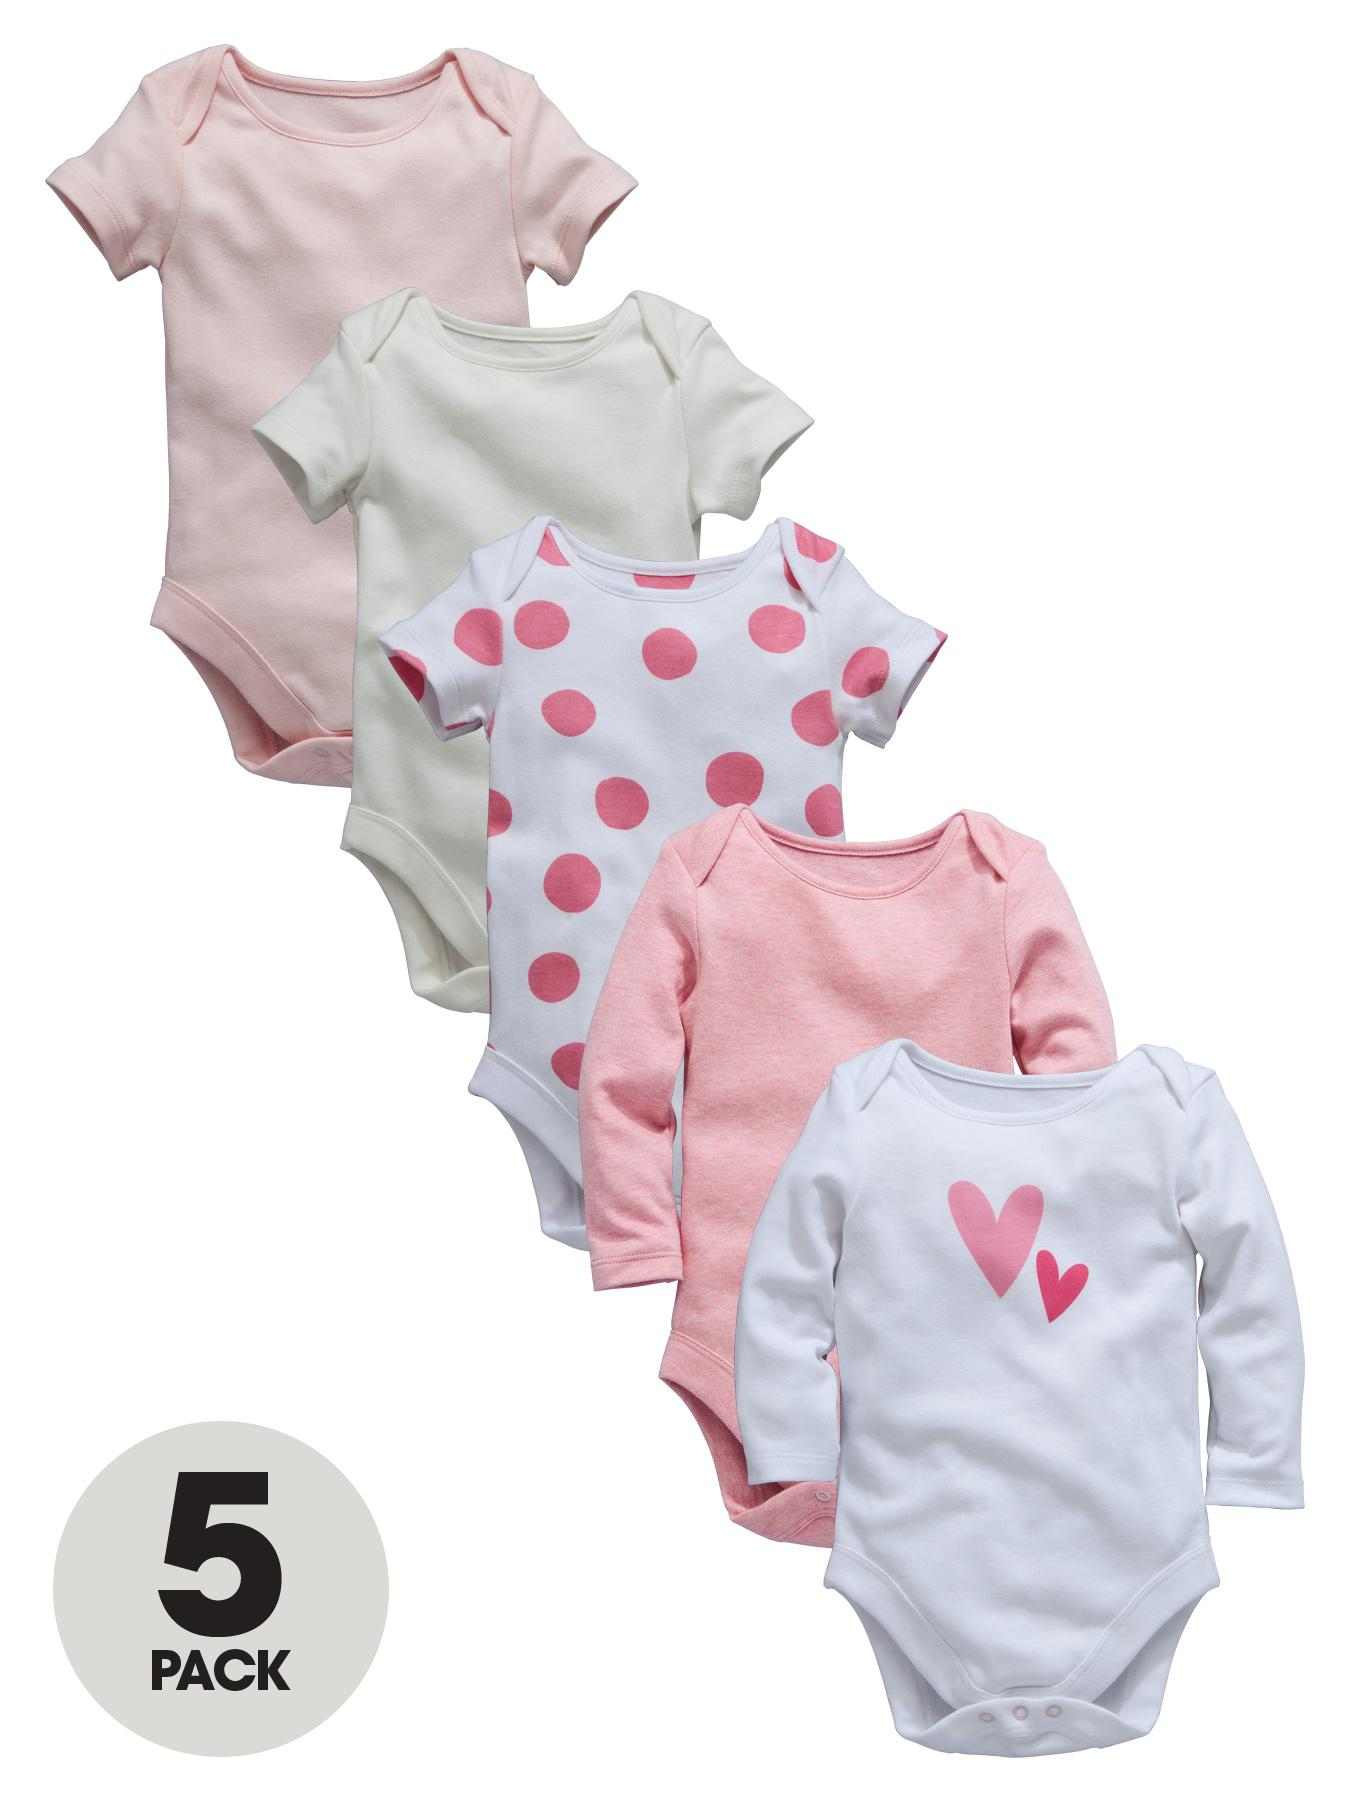 Ladybird Baby Girls Bodysuits Marl, Plain and Spots (5 Pack) - Pink, Pink